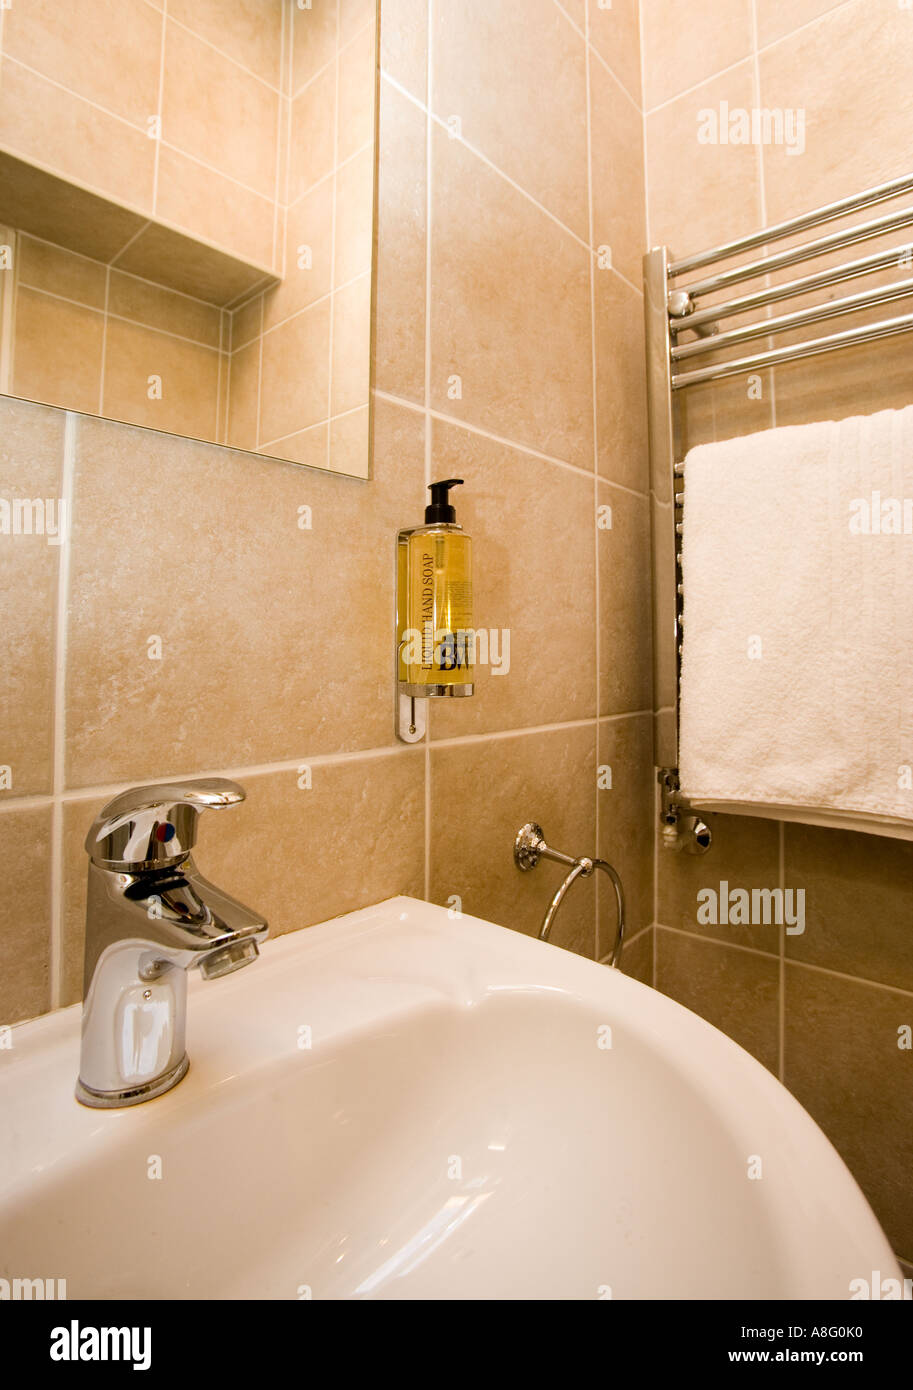 Bathroom Sink With Wall Mounted Soap Dispenser And Towel Rail